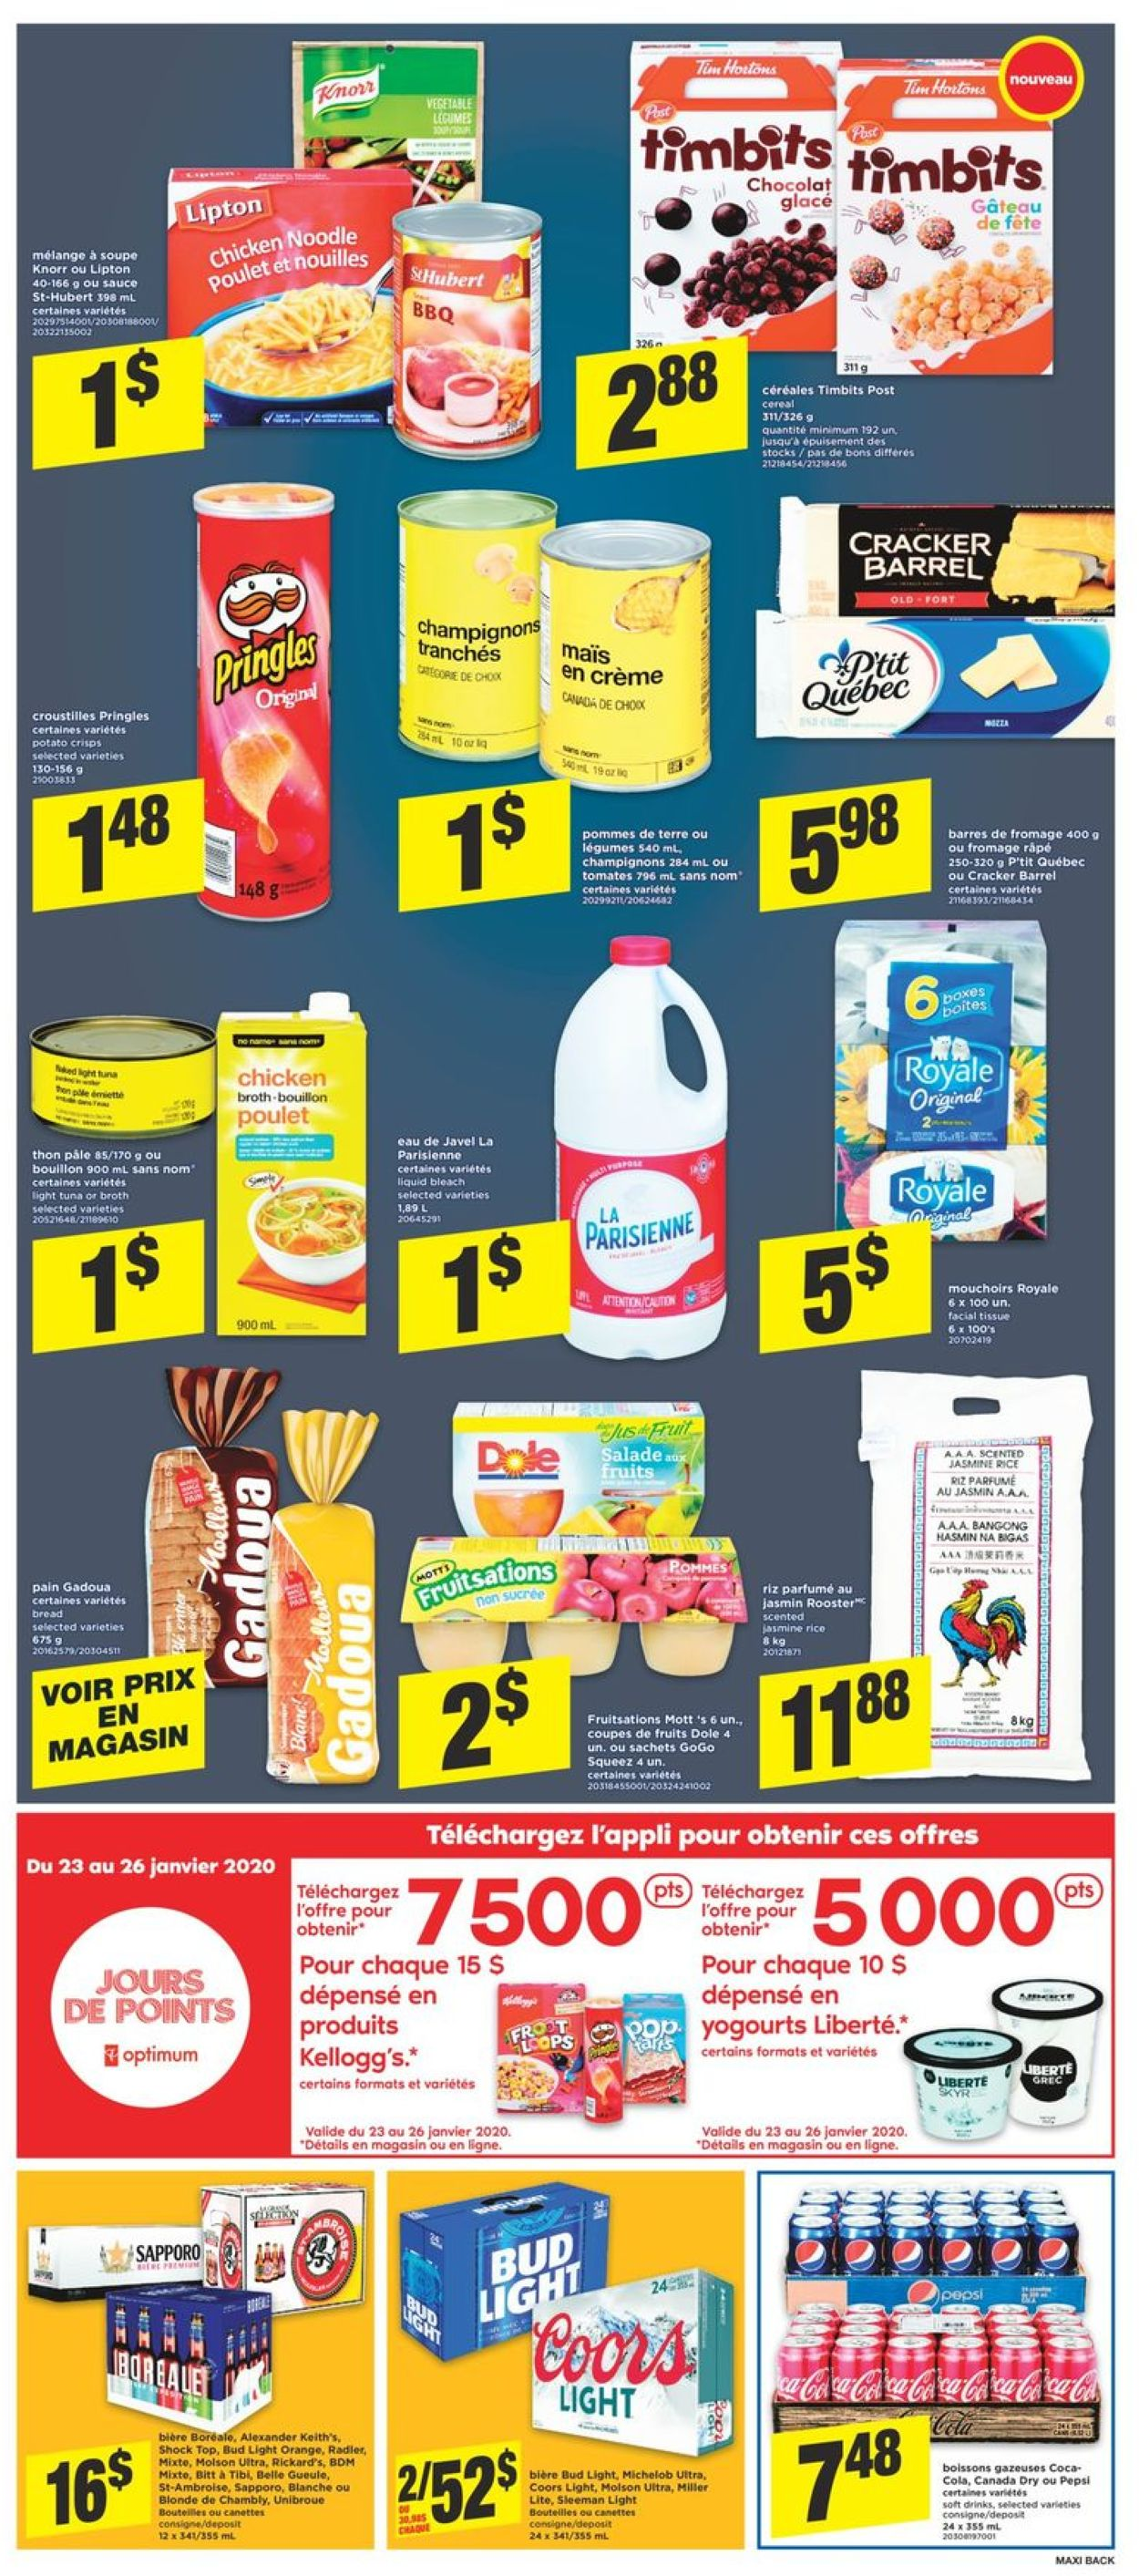 Maxi Flyer - 01/23-01/29/2020 (Page 2)